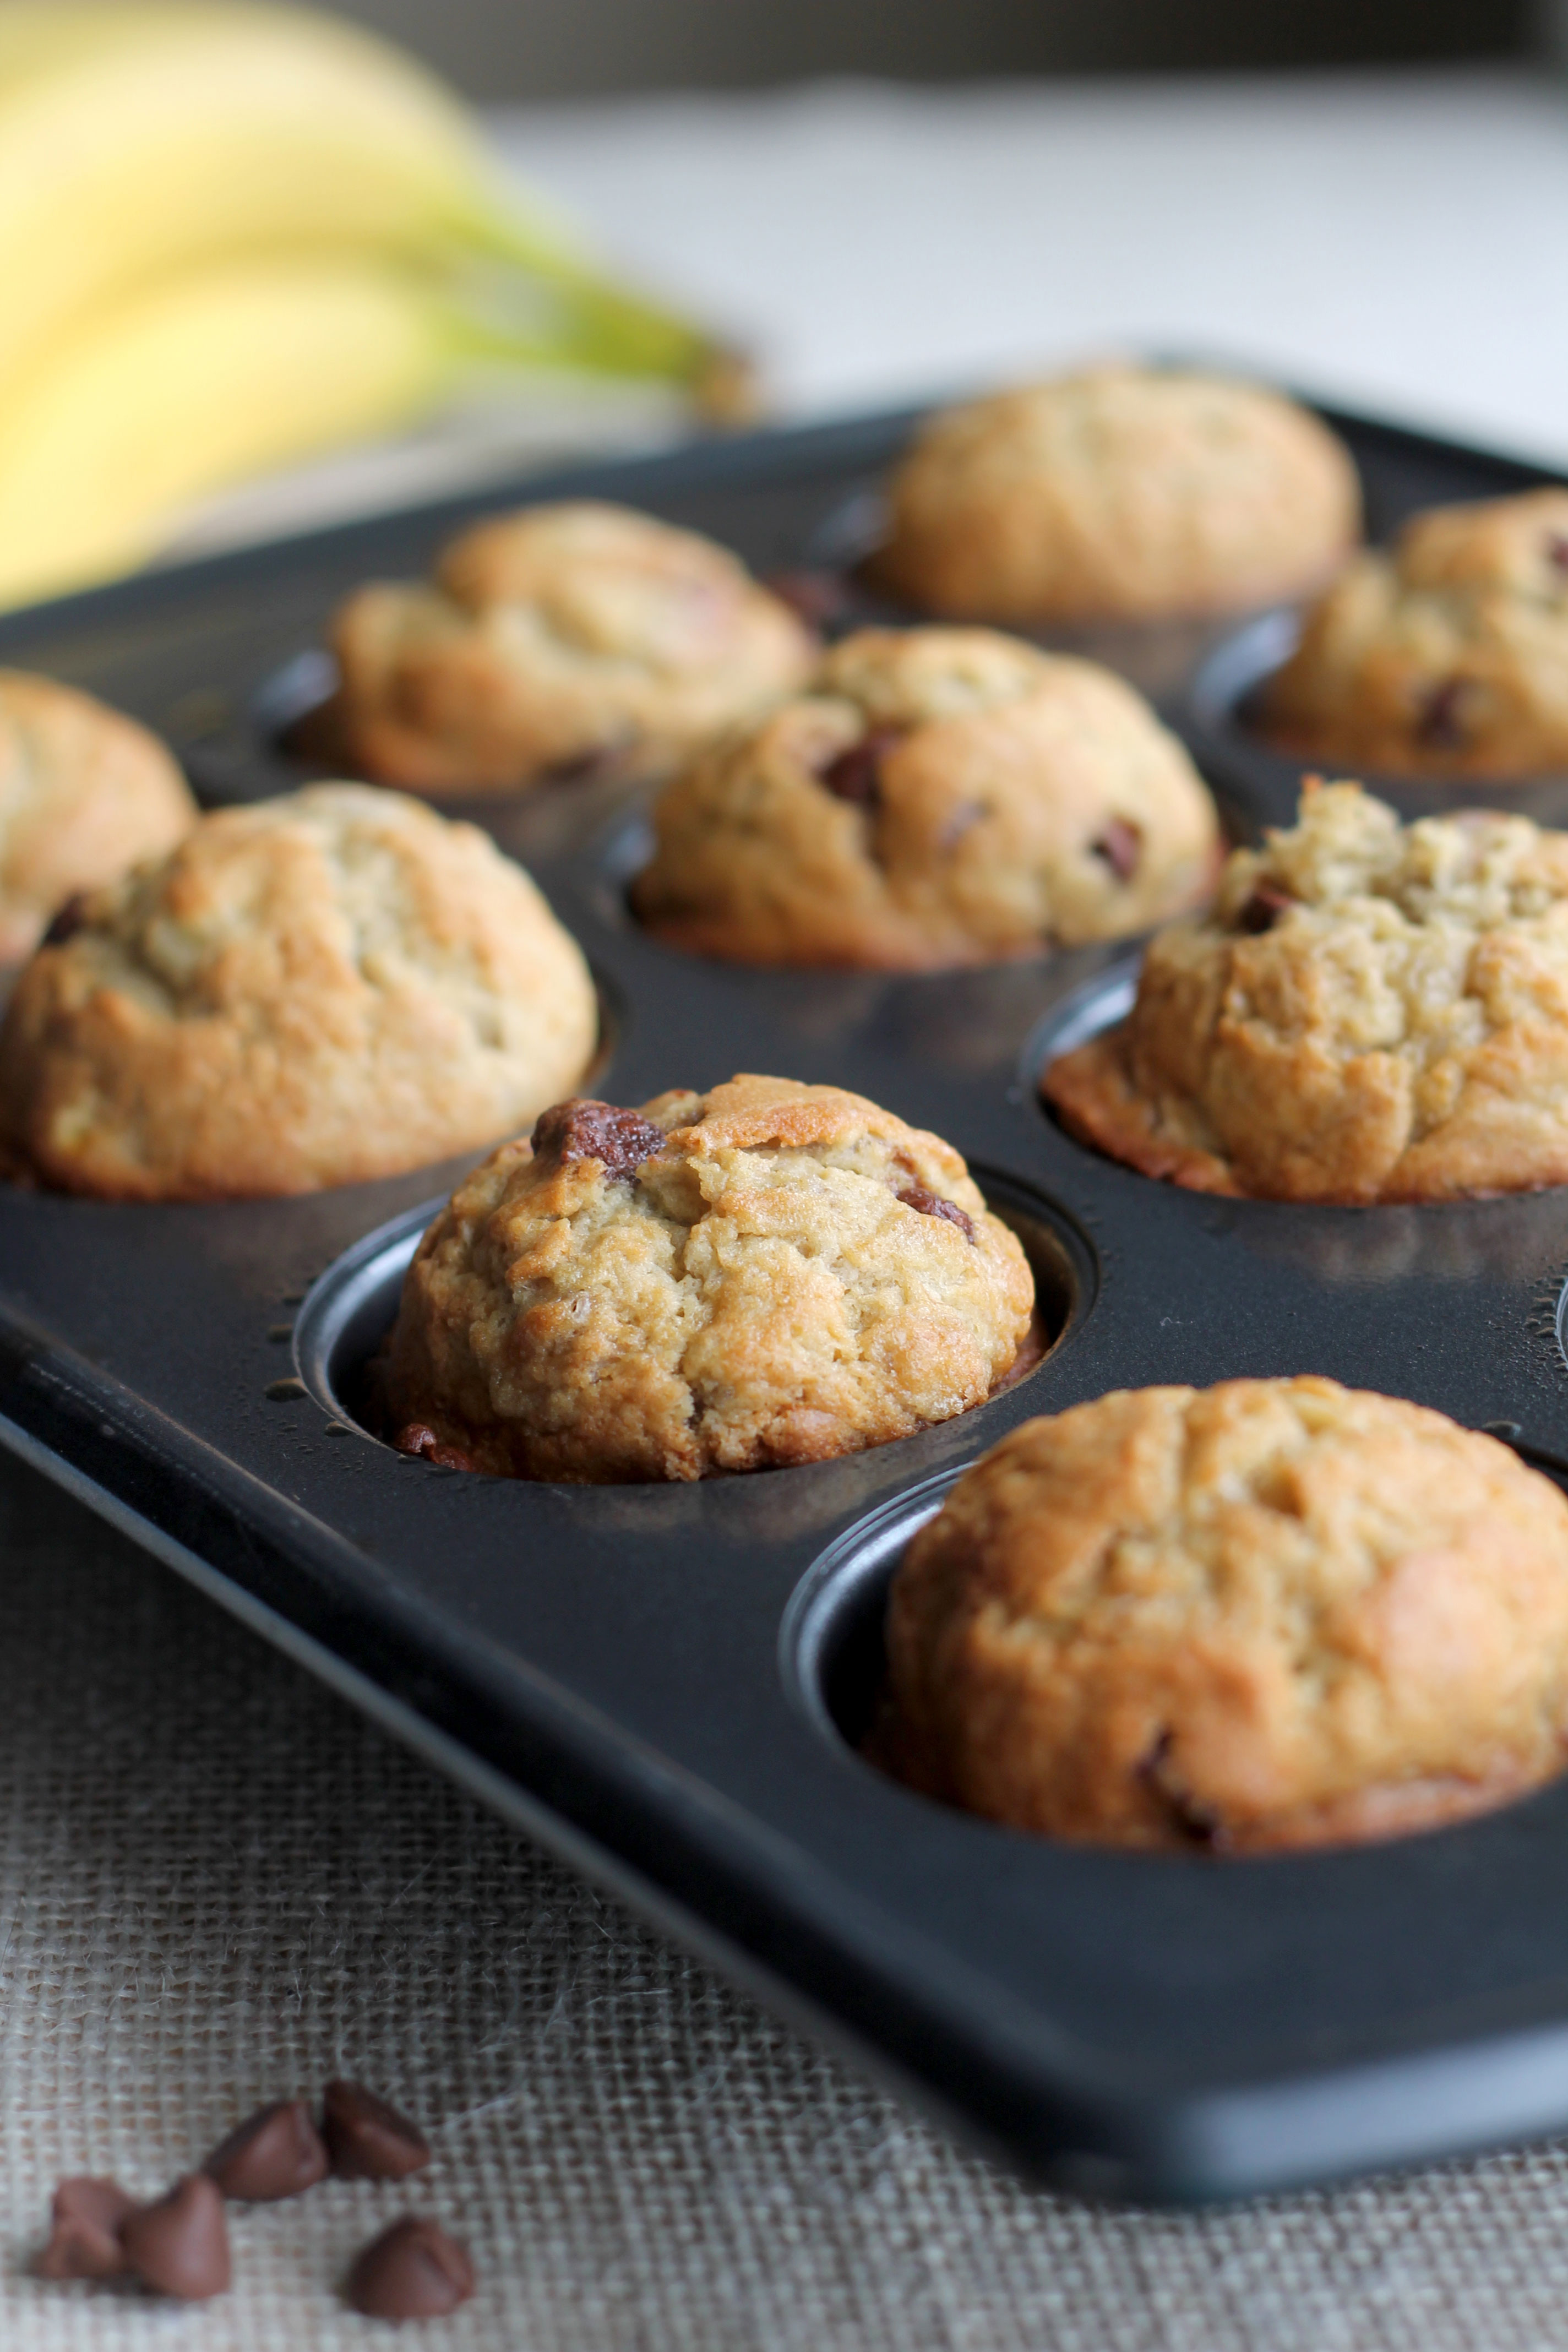 Tired of just making banana bread with those ripe bananas? Make these Banana Chocolate Chip Muffins instead!